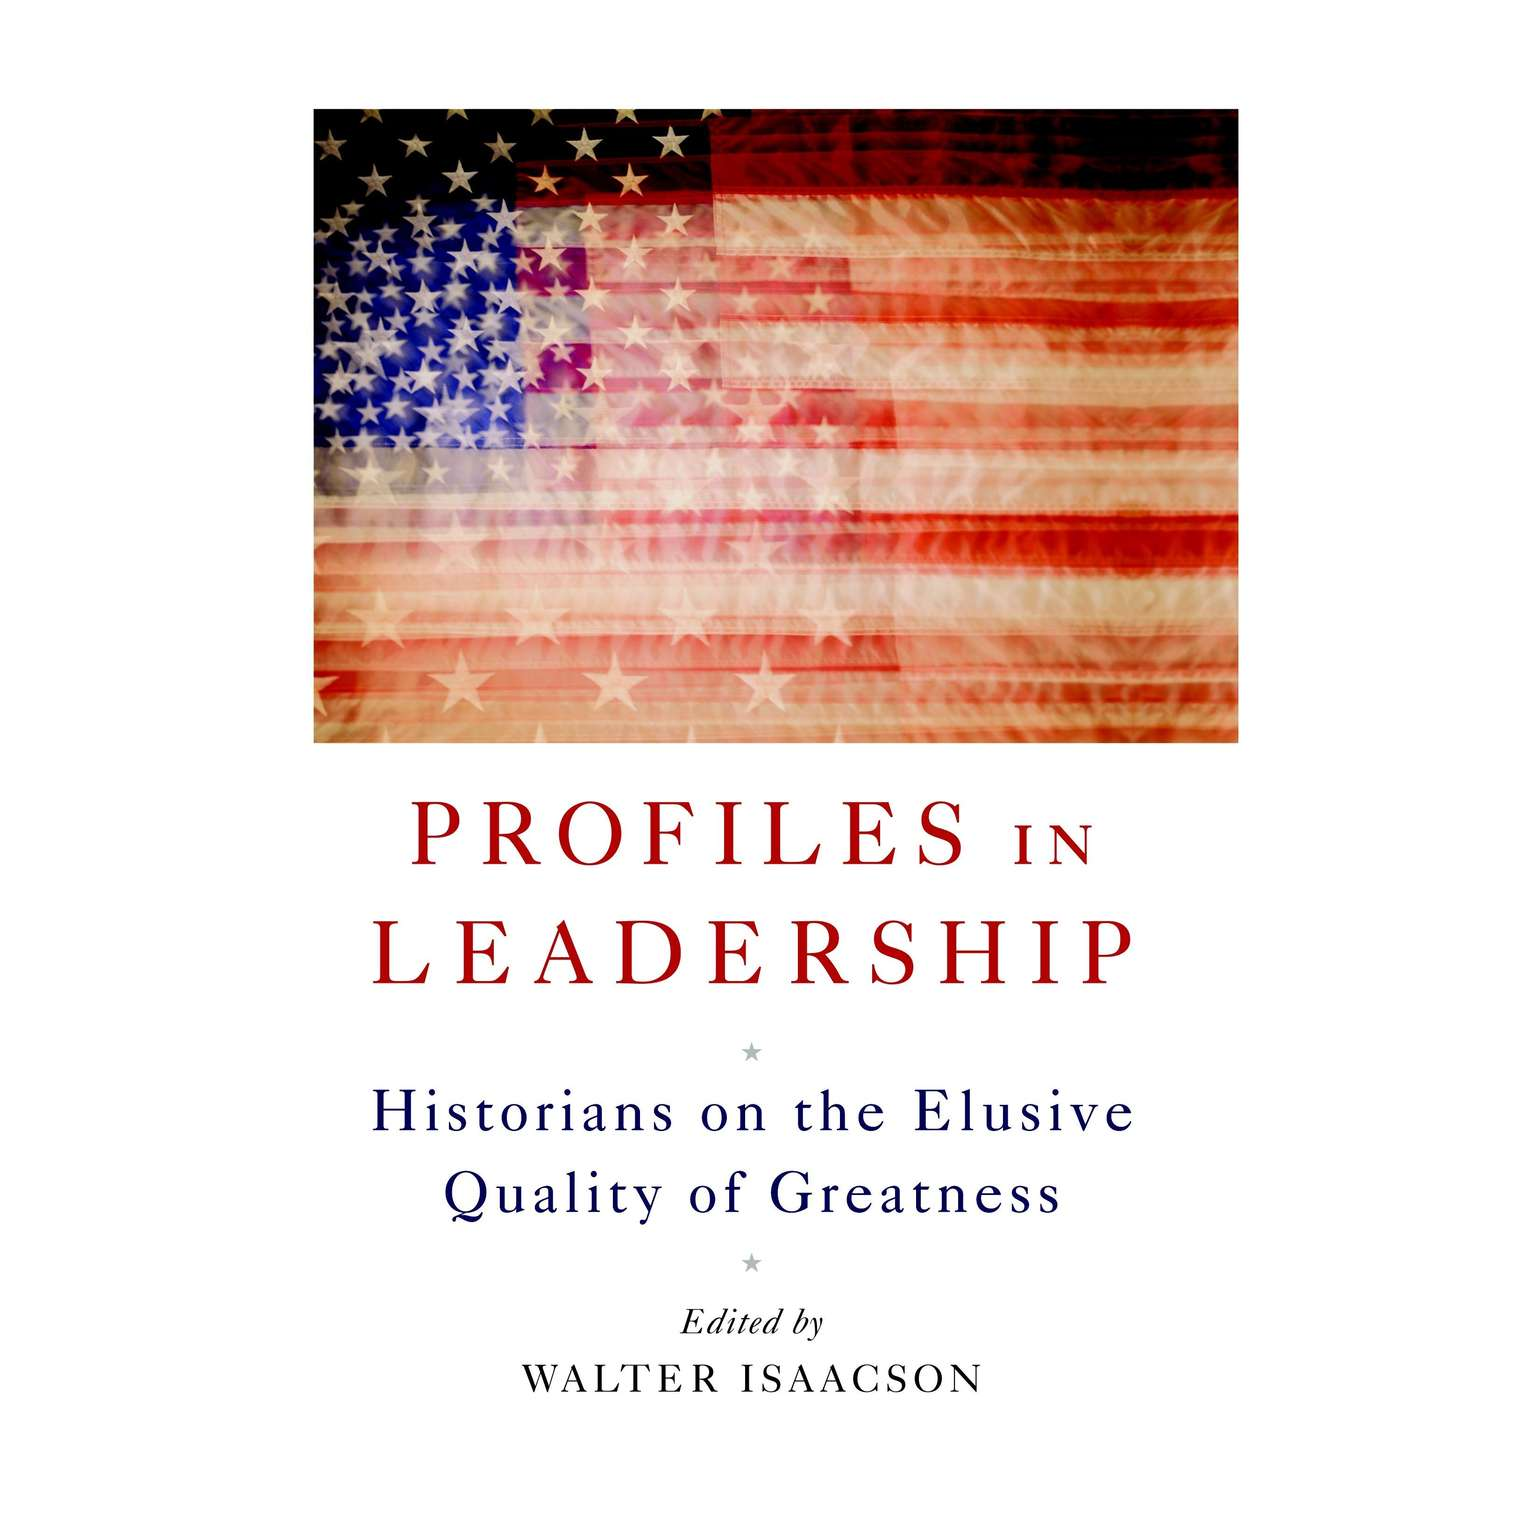 Printable Profiles in Leadership: Historians on the Elusive Quality of Greatness Audiobook Cover Art